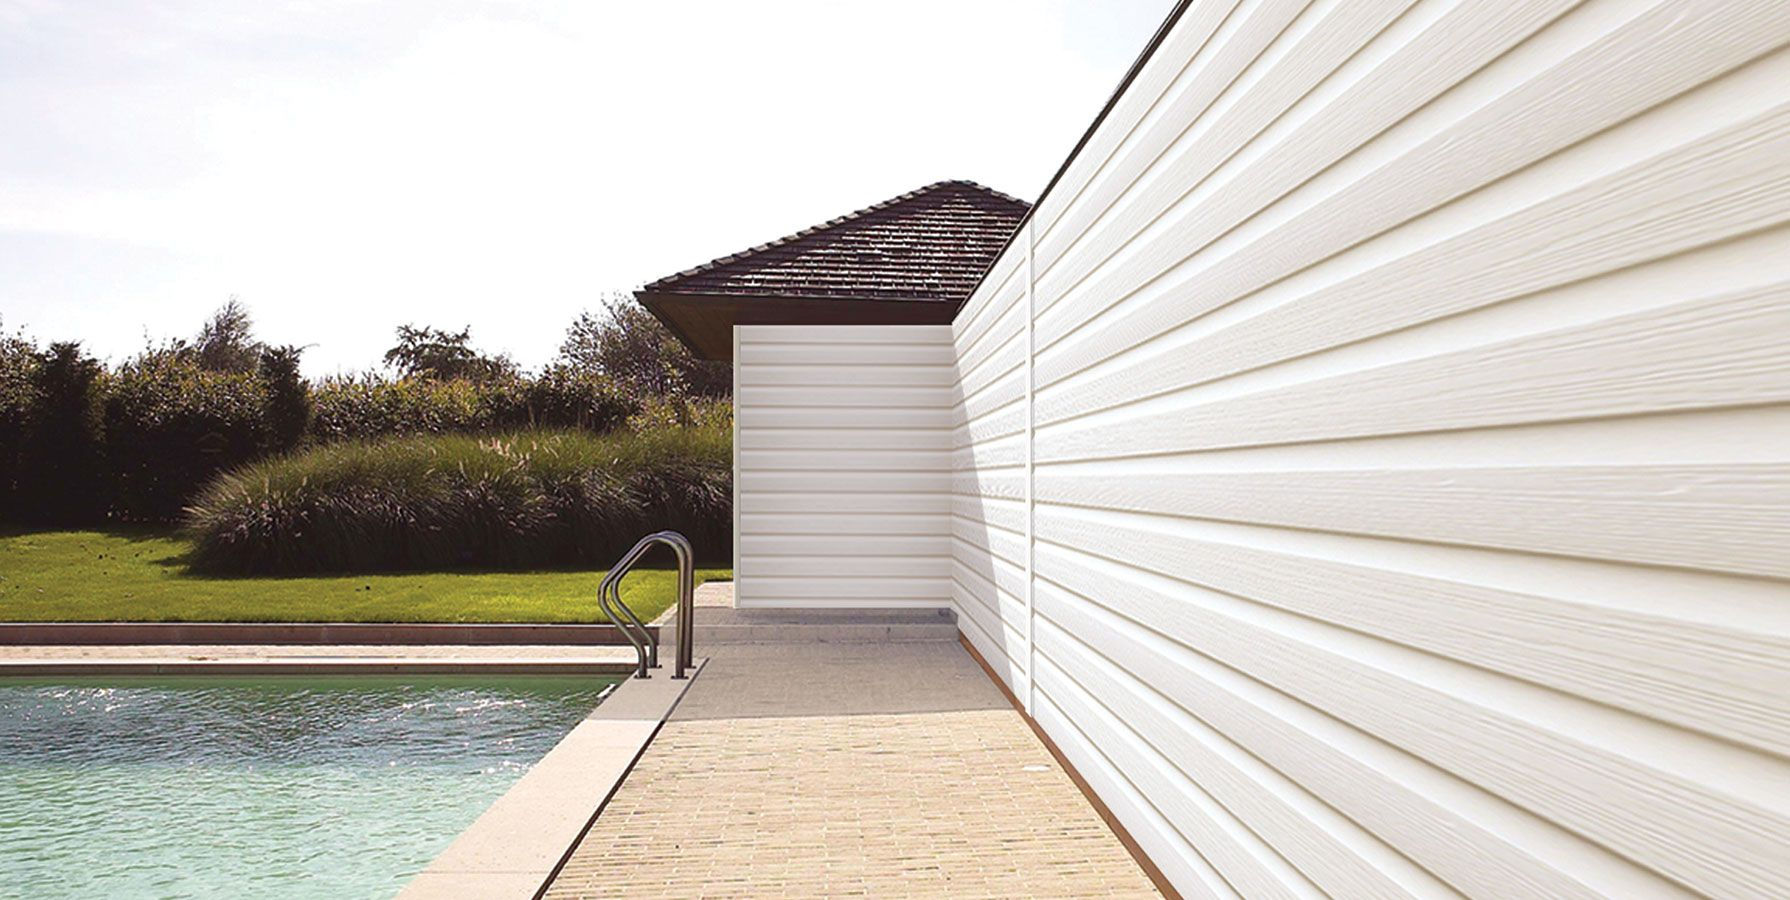 White Fortex External Cladding Pvc Used For A Beach